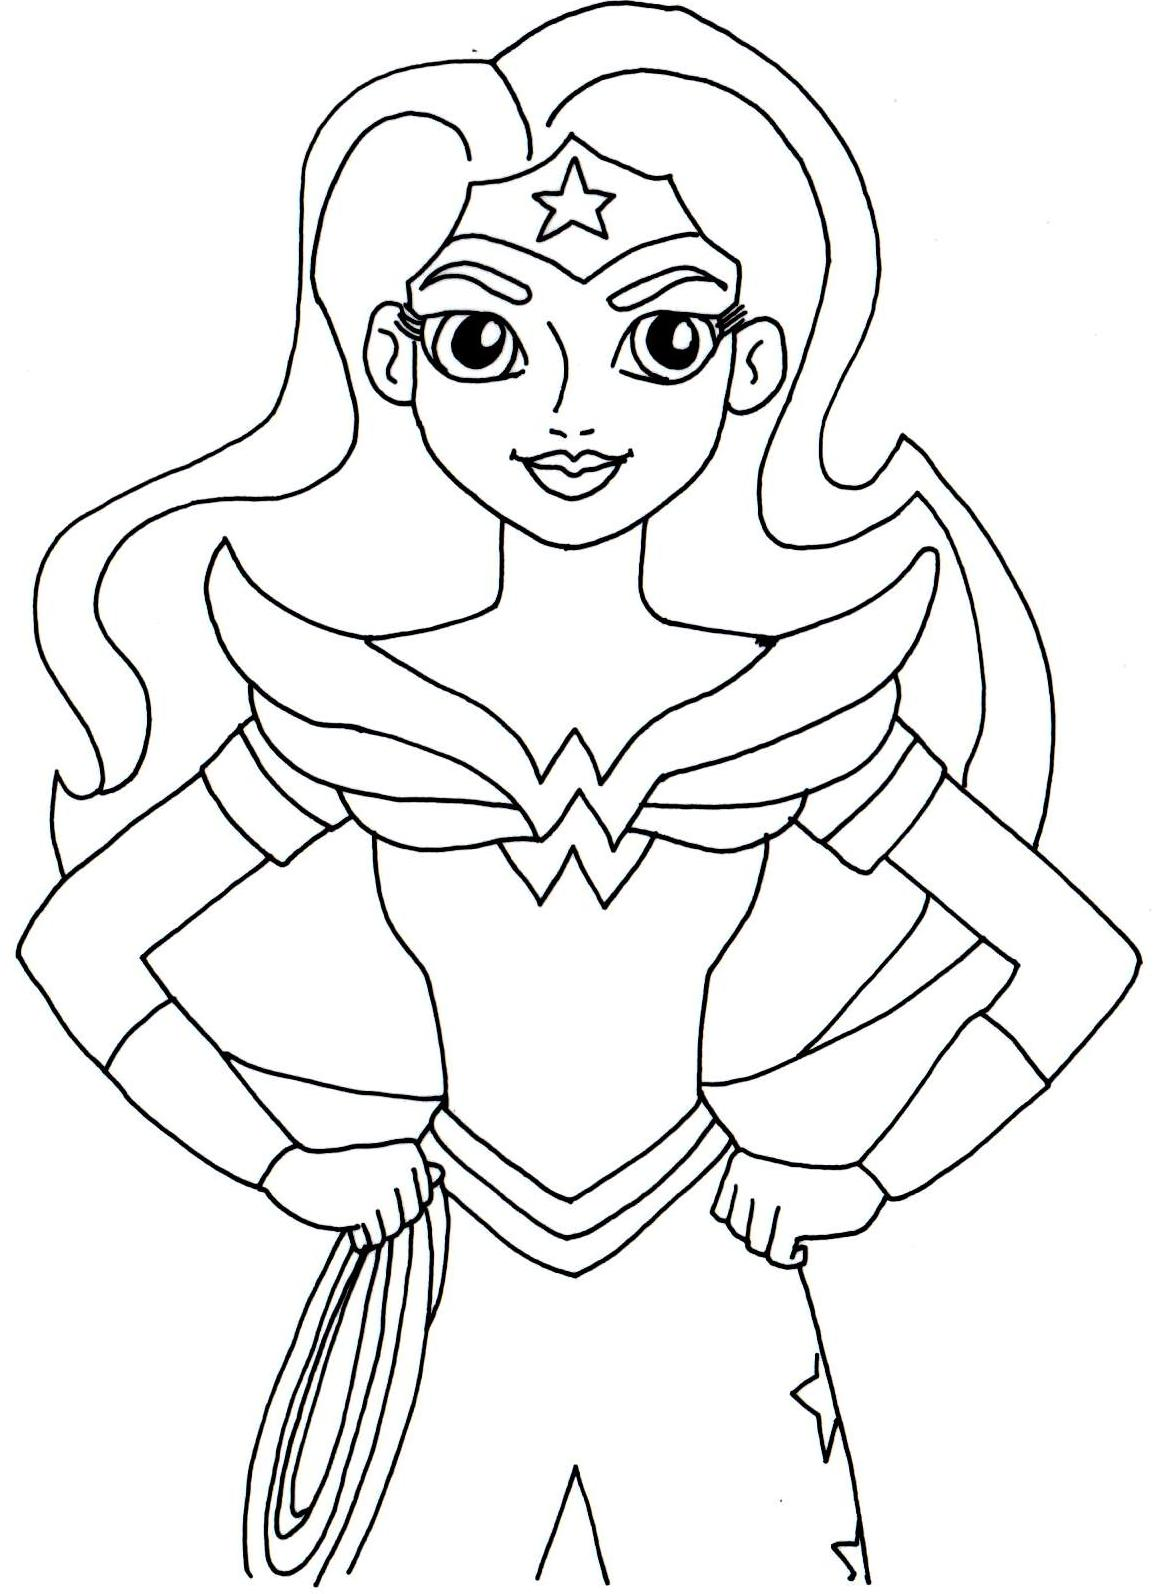 free printable super hero high coloring page for wonder woman